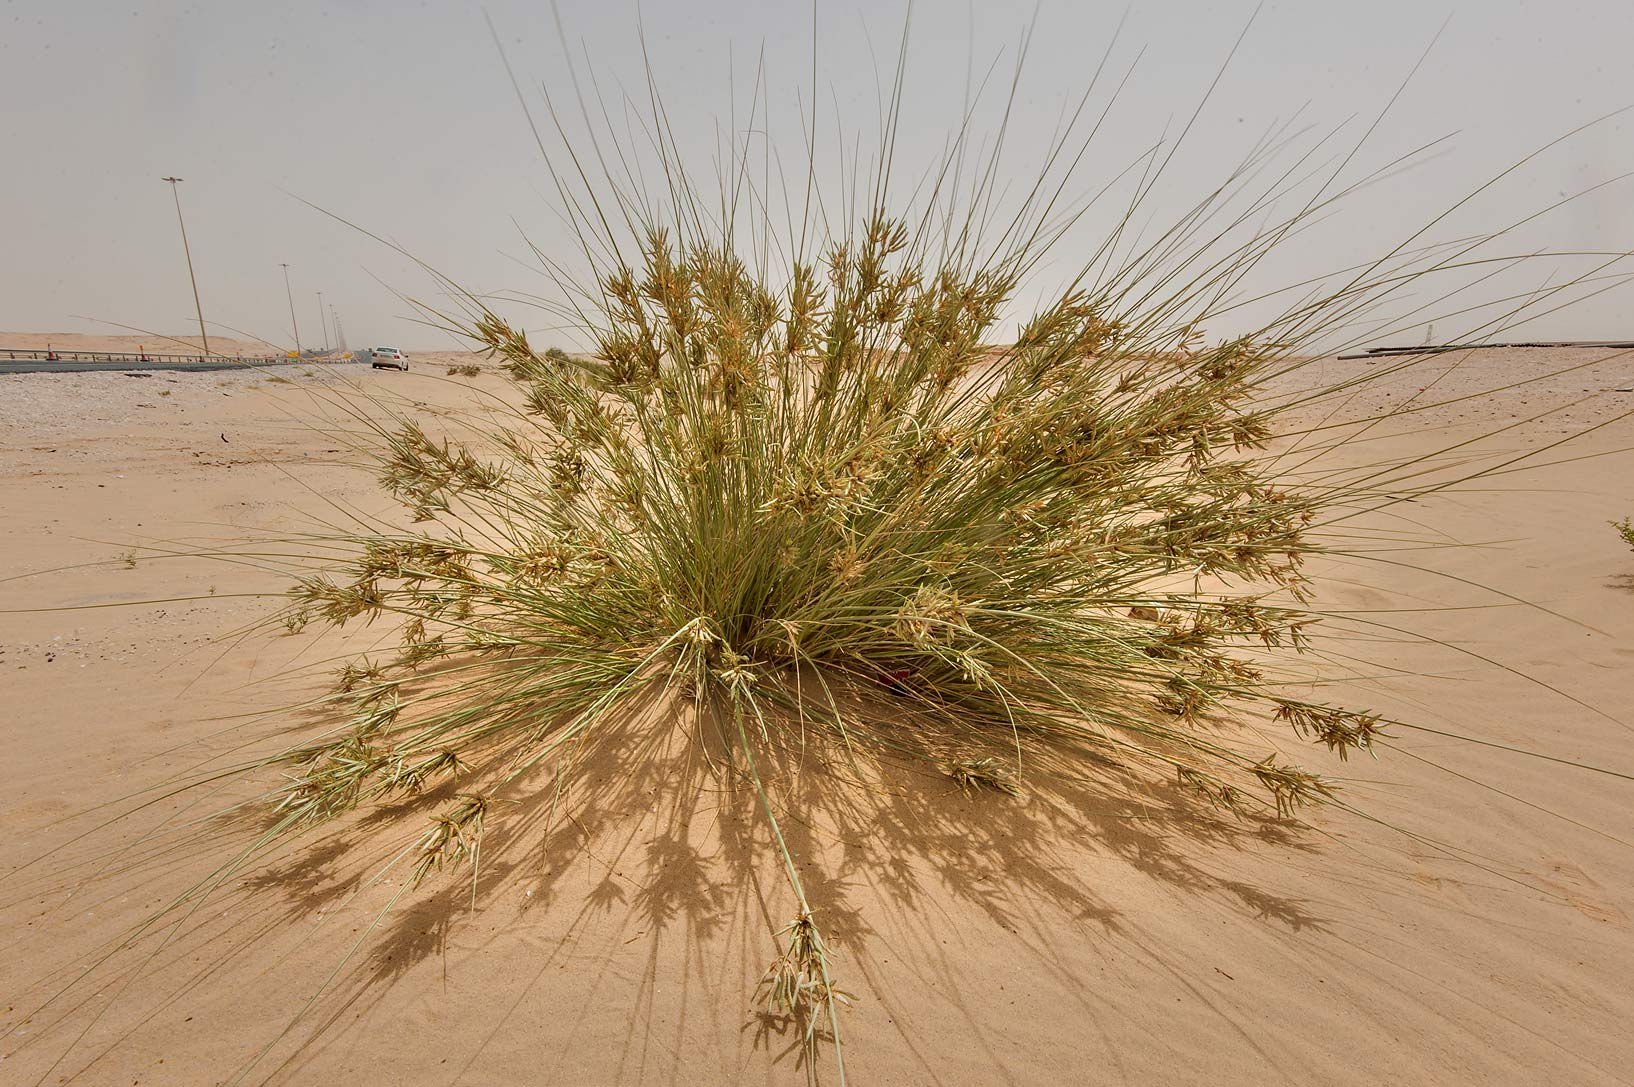 Sedge (Cyperus conglomeratus) in windblown sand...area of Rawdat Ekdaim. Southern Qatar